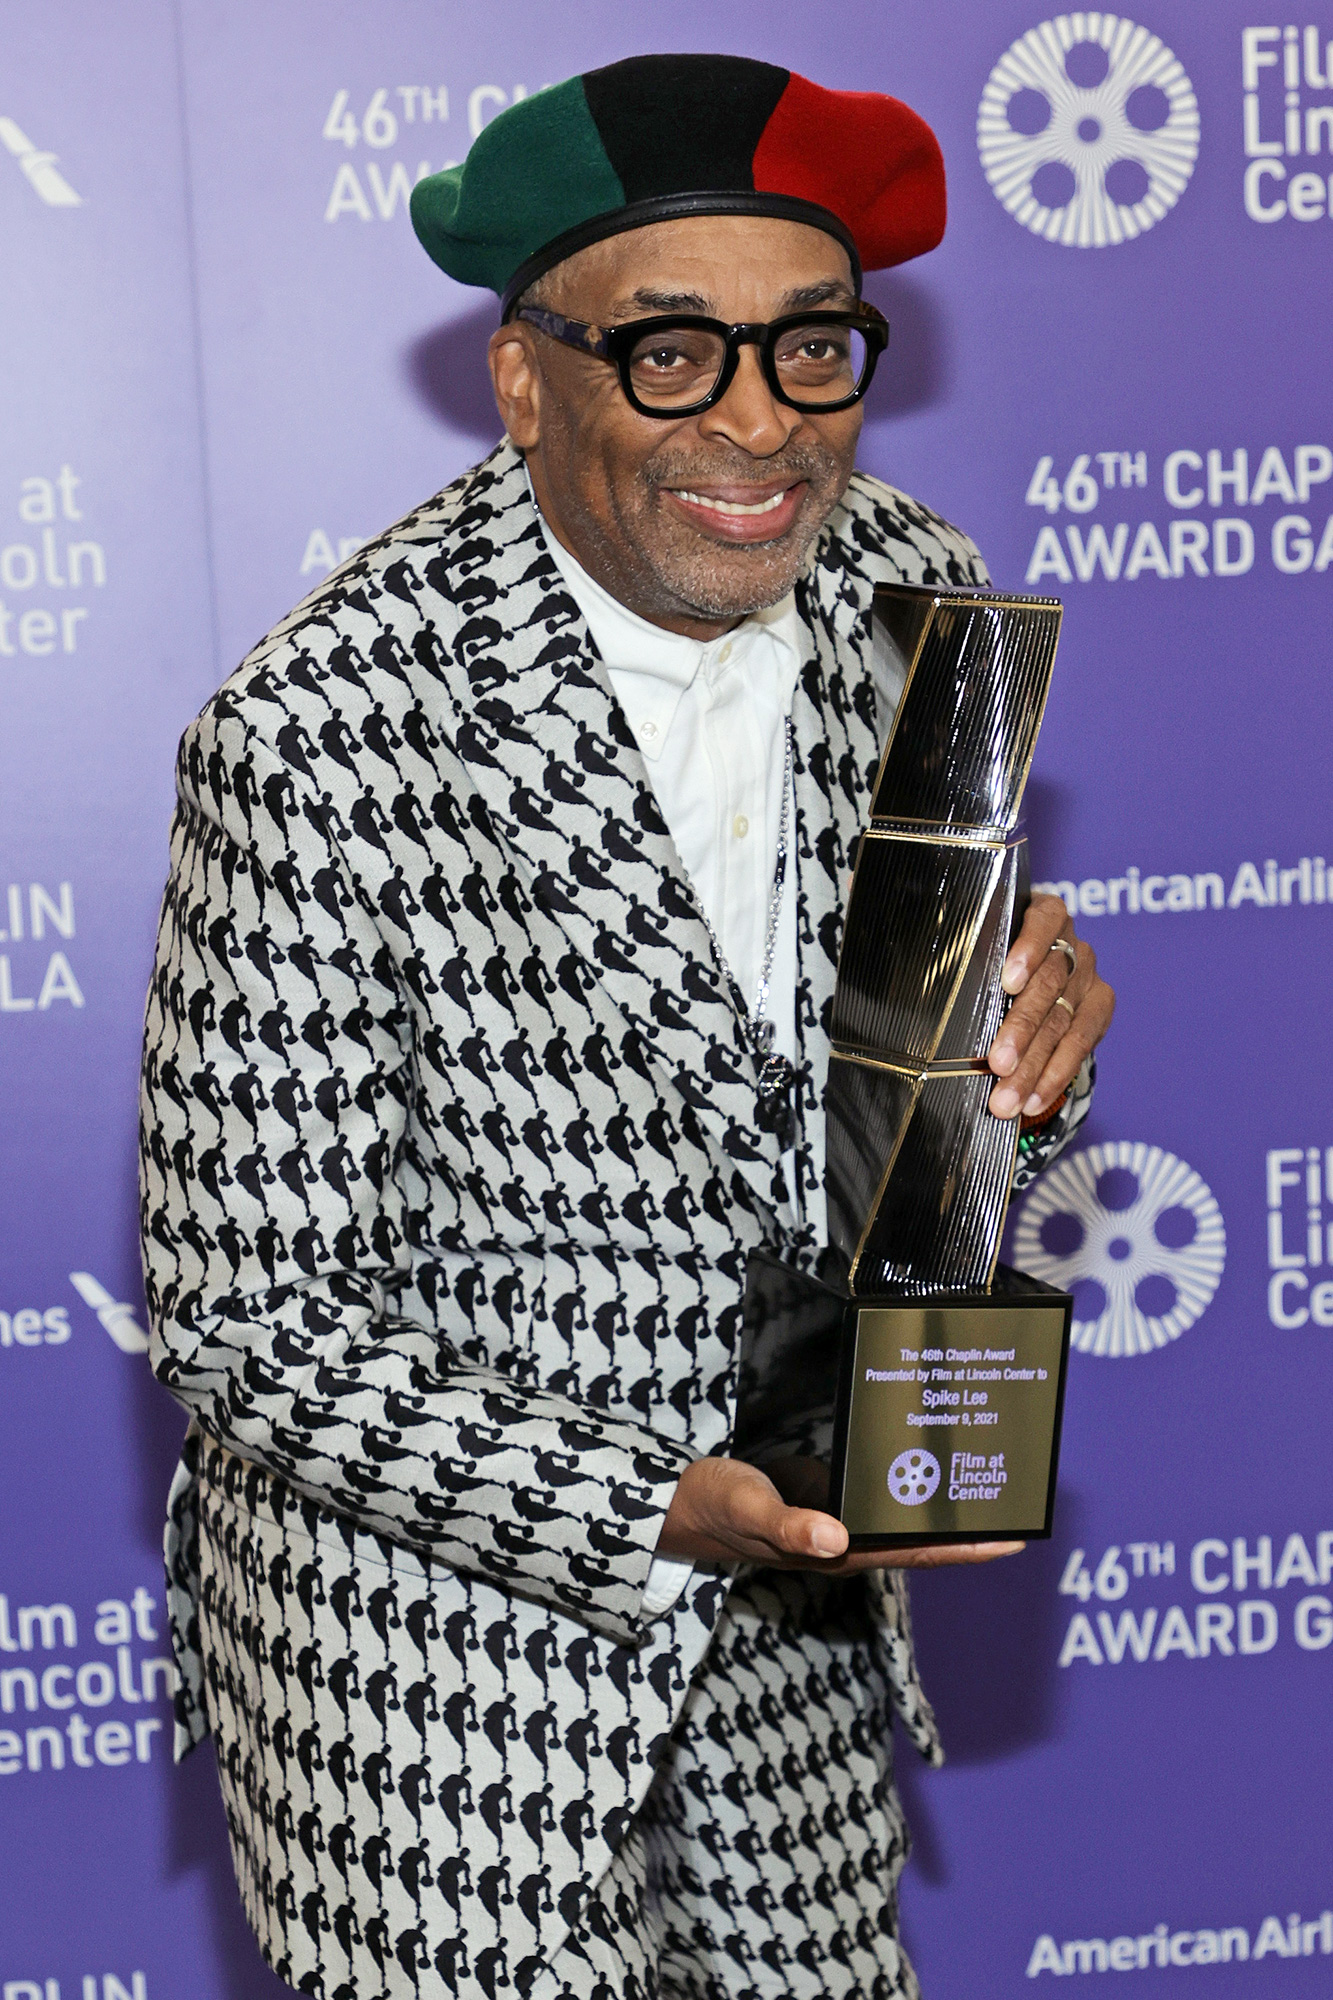 Spike Lee poses backstage during the 46th Chaplin Award Gala Honoring Spike Lee on September 09, 2021 in New York City.